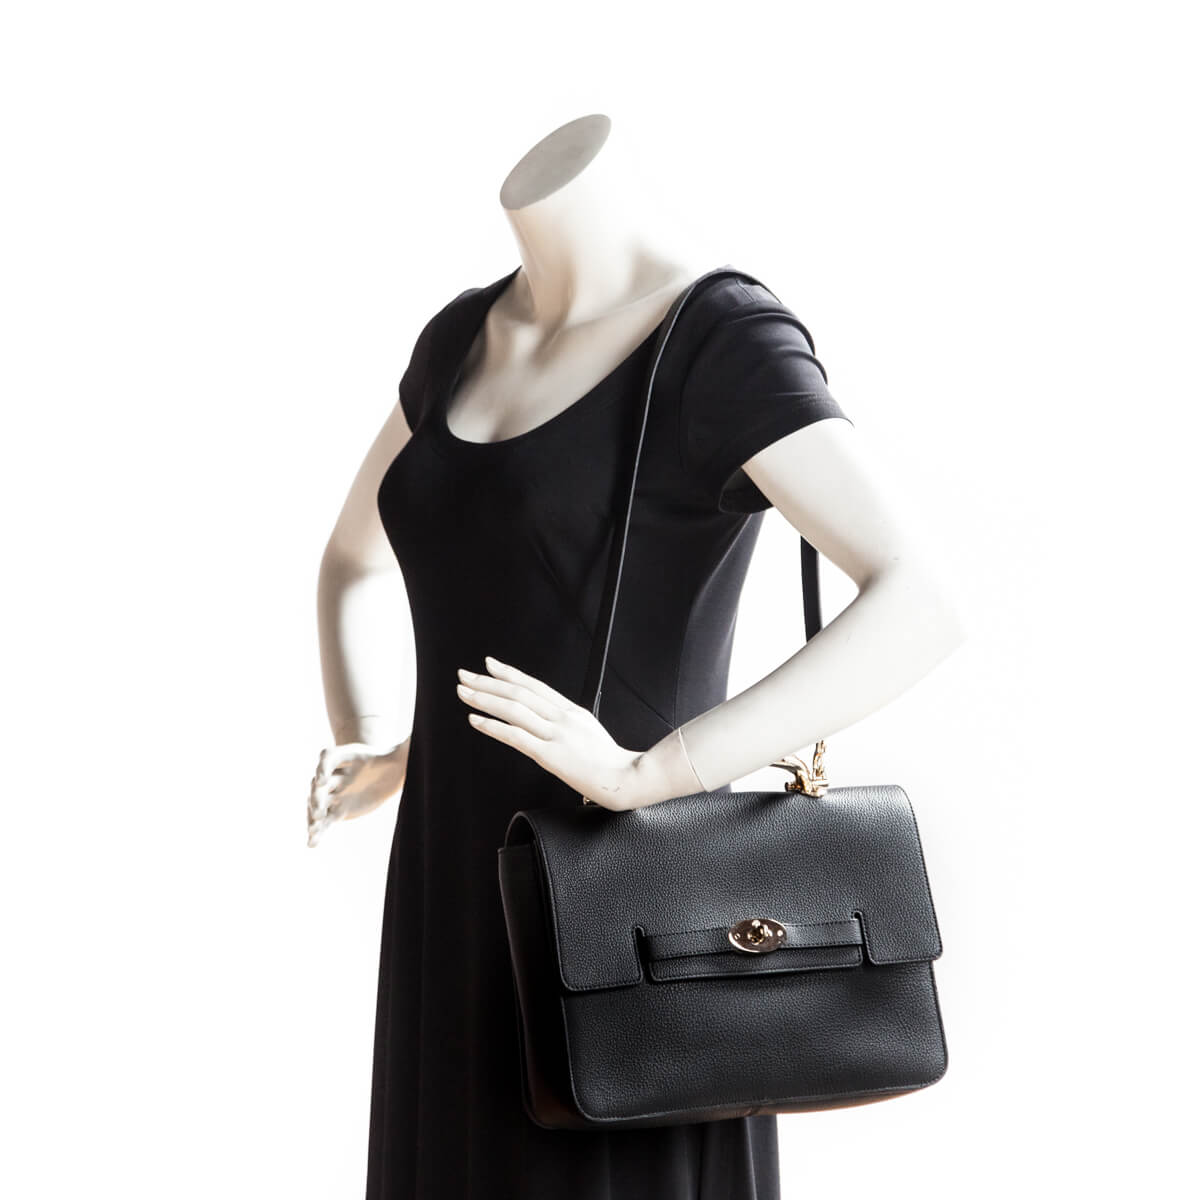 b96b00a2a43 ... cheap mulberry black grainy calfskin large bayswater love that bag  preowned authentic designer handbags 8e6d1 7c925 ...